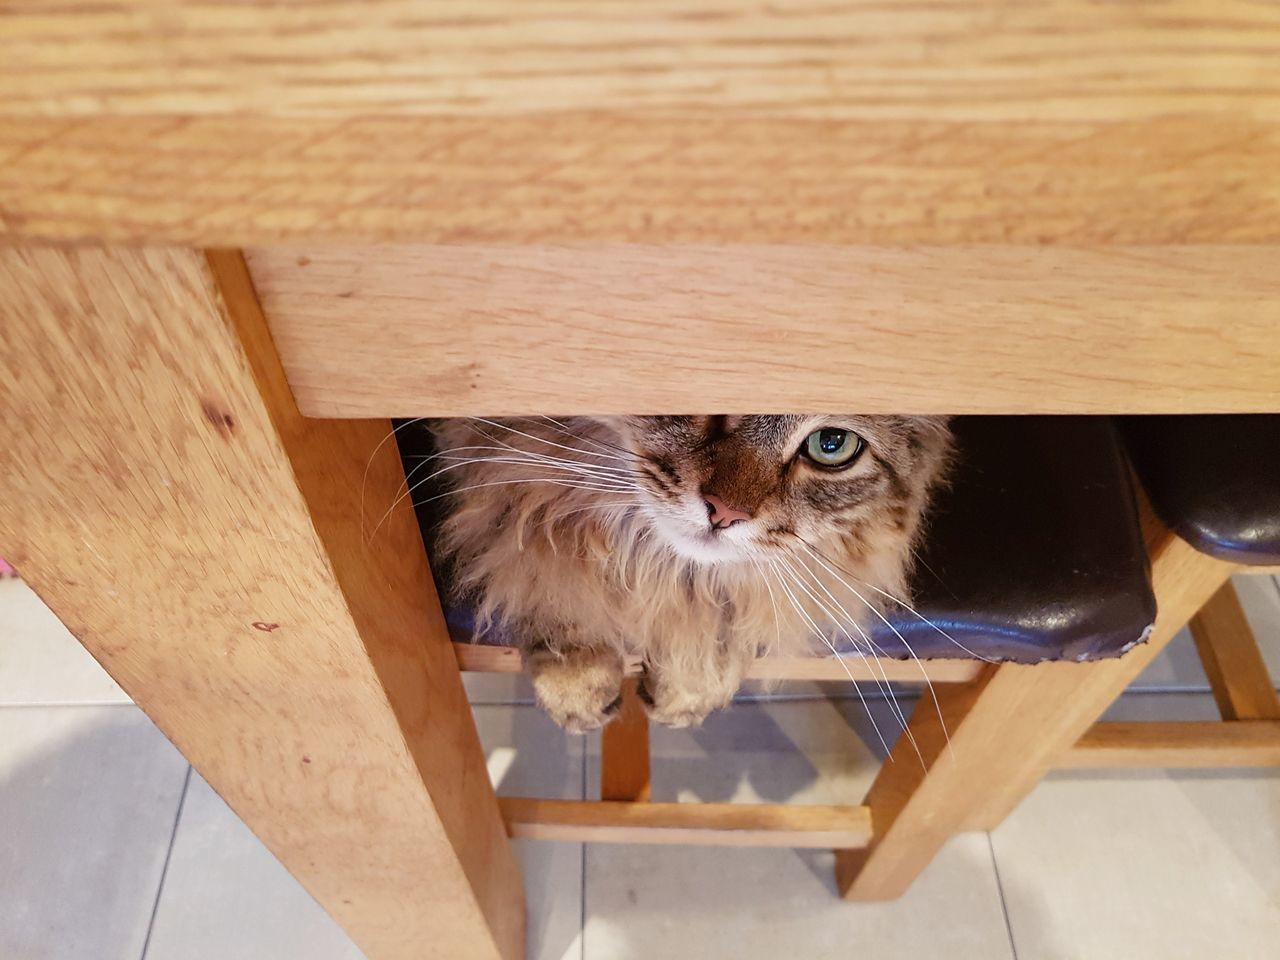 Feline hiding spot under the dining room table. Pets Domestic Cat Domestic Animals Animal Themes Mammal One Animal Wood - Material Feline Indoors  No People Portrait EyeEmNewHere Samsung Galaxy S7 Edge Maine Coon Cat Cat Lovers Inquisitive Looking For Trouble Staring Cats Of EyeEm Feline Portraits Greeneyes Wide Eyed Funny Pets Funny Cats Hiding Cat